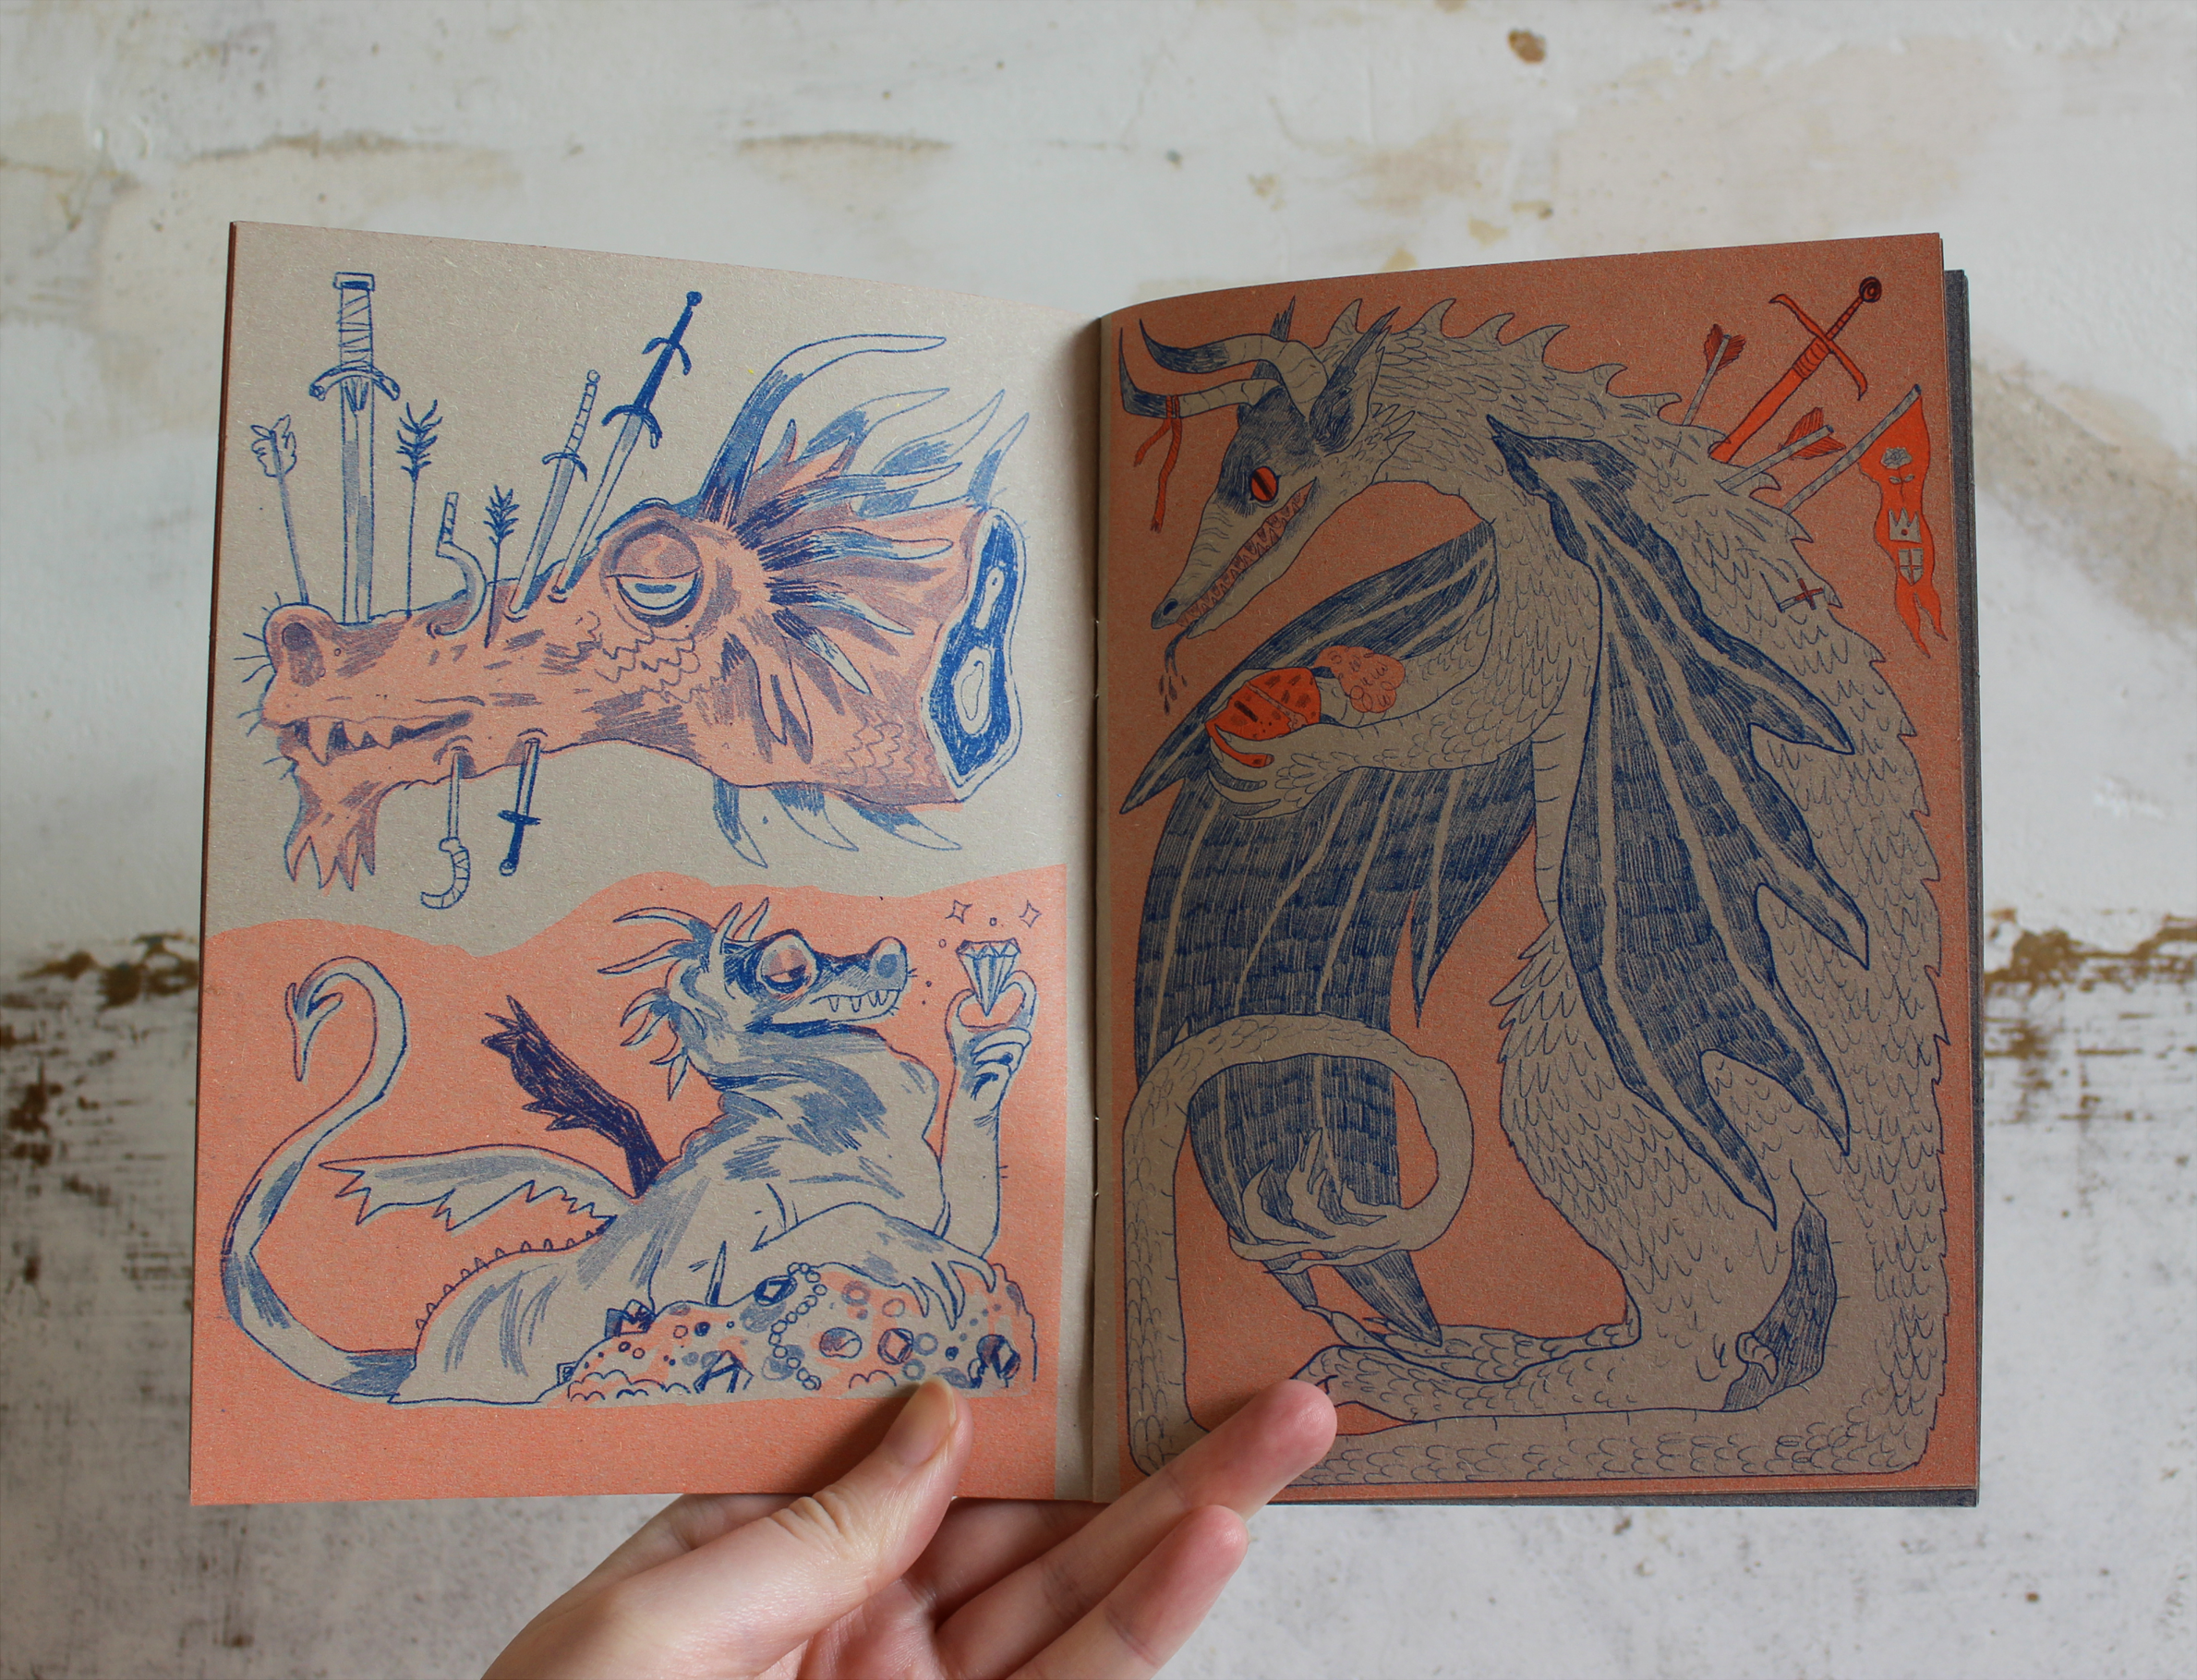 'Wyrm: Book of Dragons' by Eli Spencer & Sophie Robin